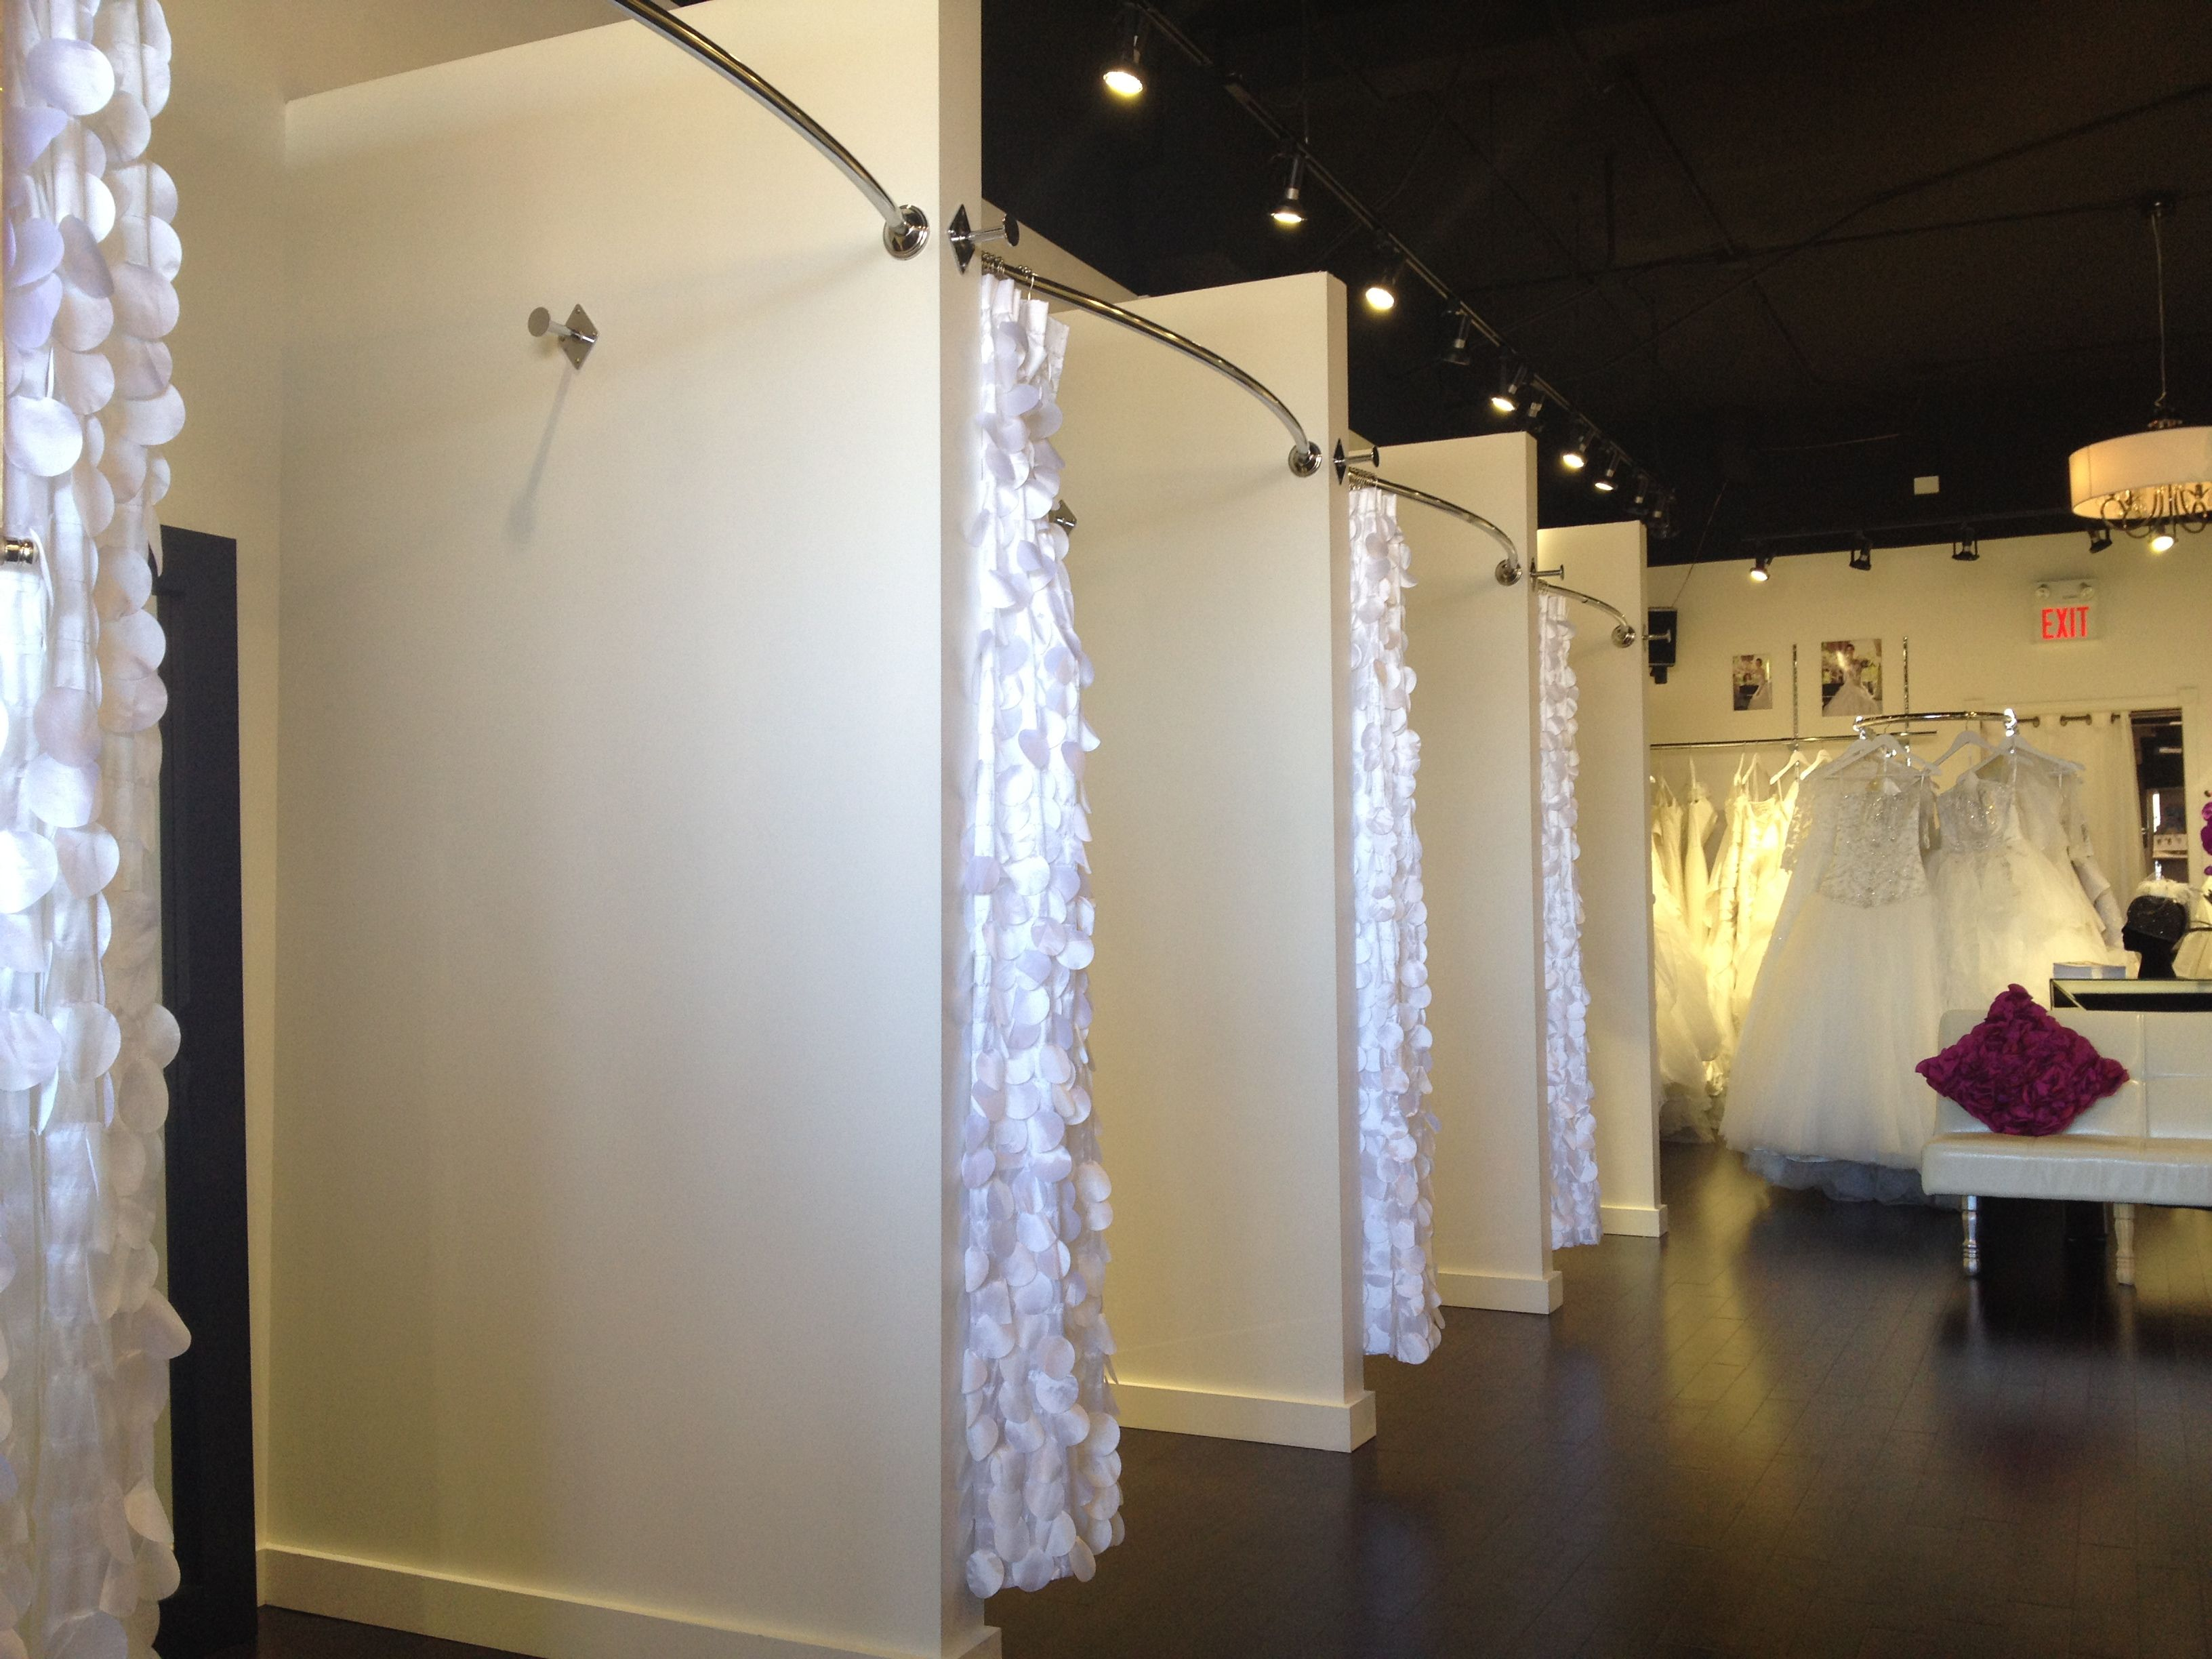 Dressing Rooms Height Of Curtain Rod 210cm 215cm From The Floor